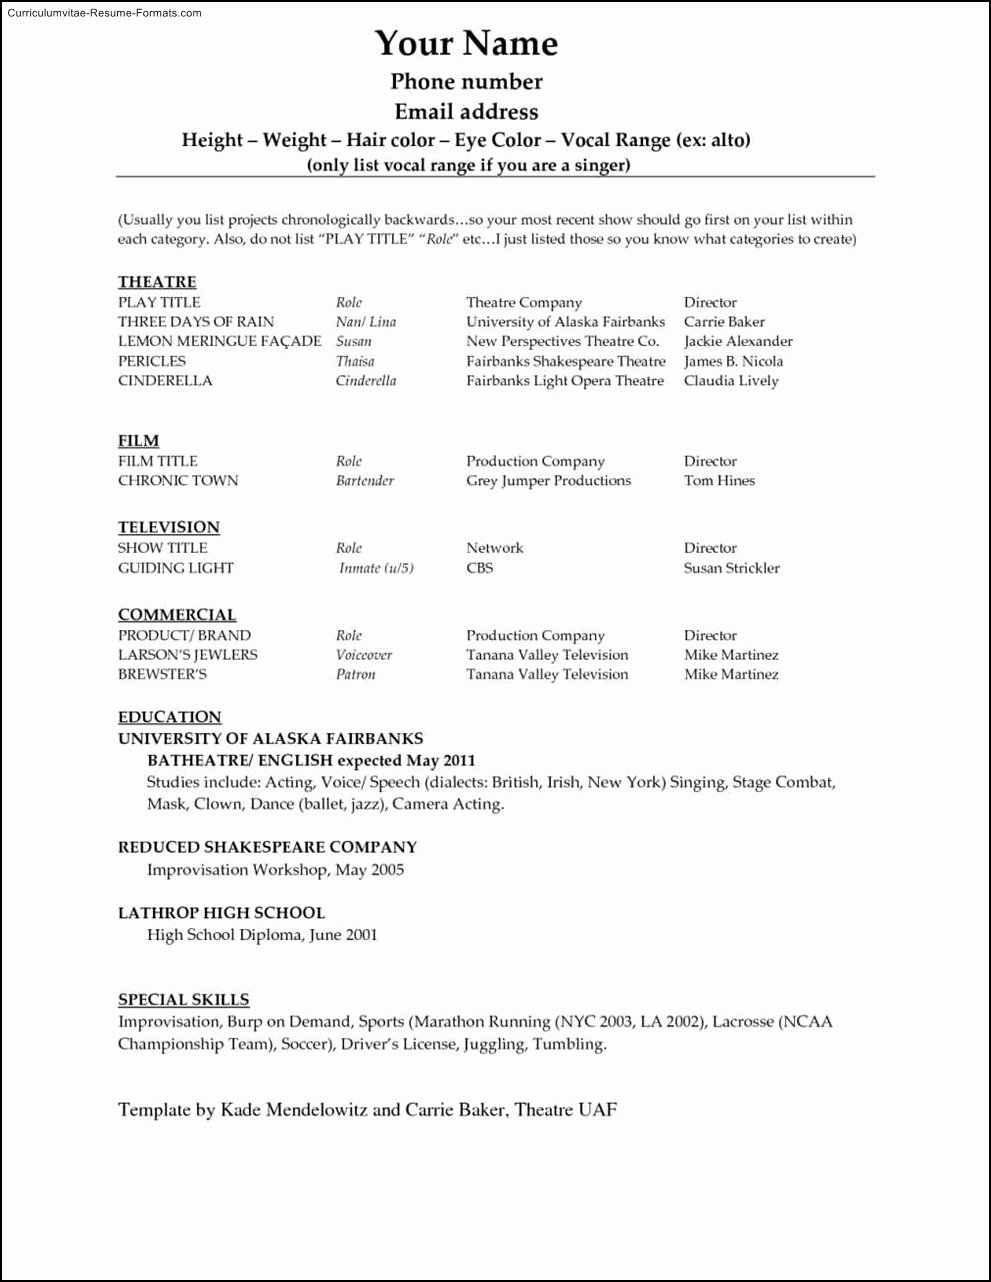 Microsoft Fice Resume Templates 2013 Free Samples